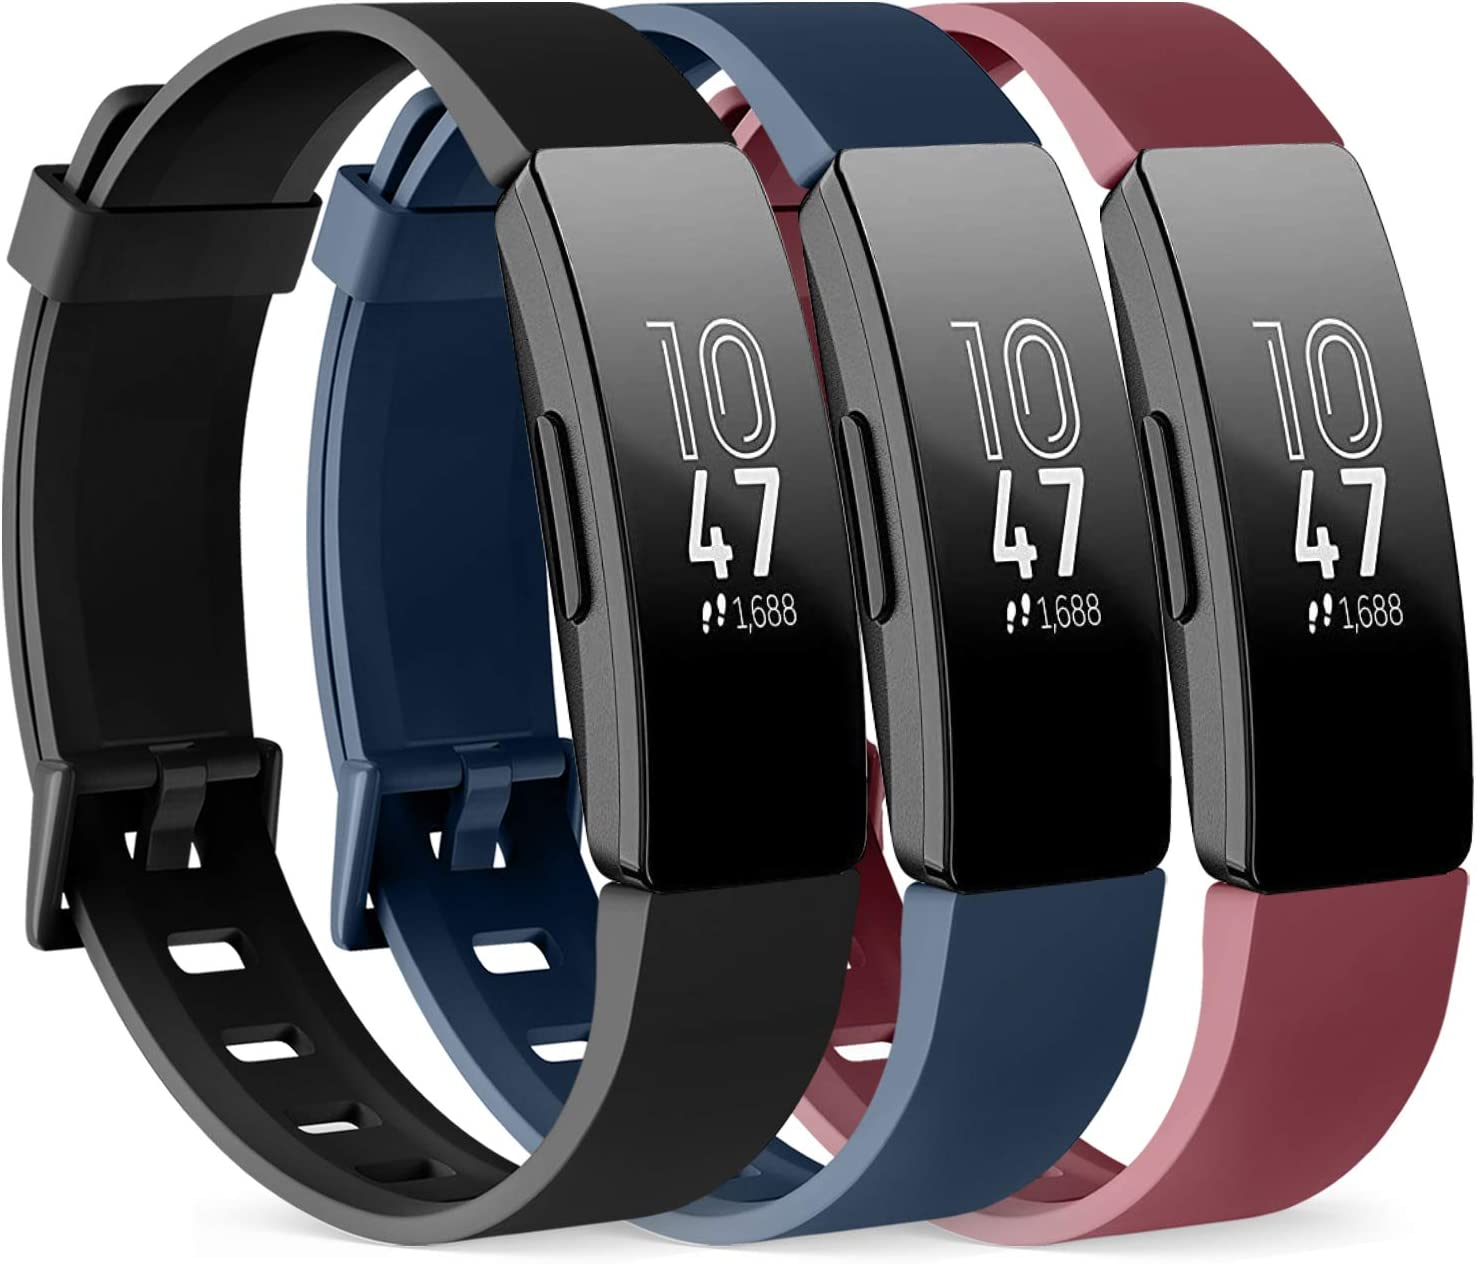 PACK 3 Silicone Bands for Fitbit Inspire HR & Fitbit Inspire 2 & Fitbit Inspire & Ace 2 Replacement Wristbands for Women Men Small Large (Large: for 7.1